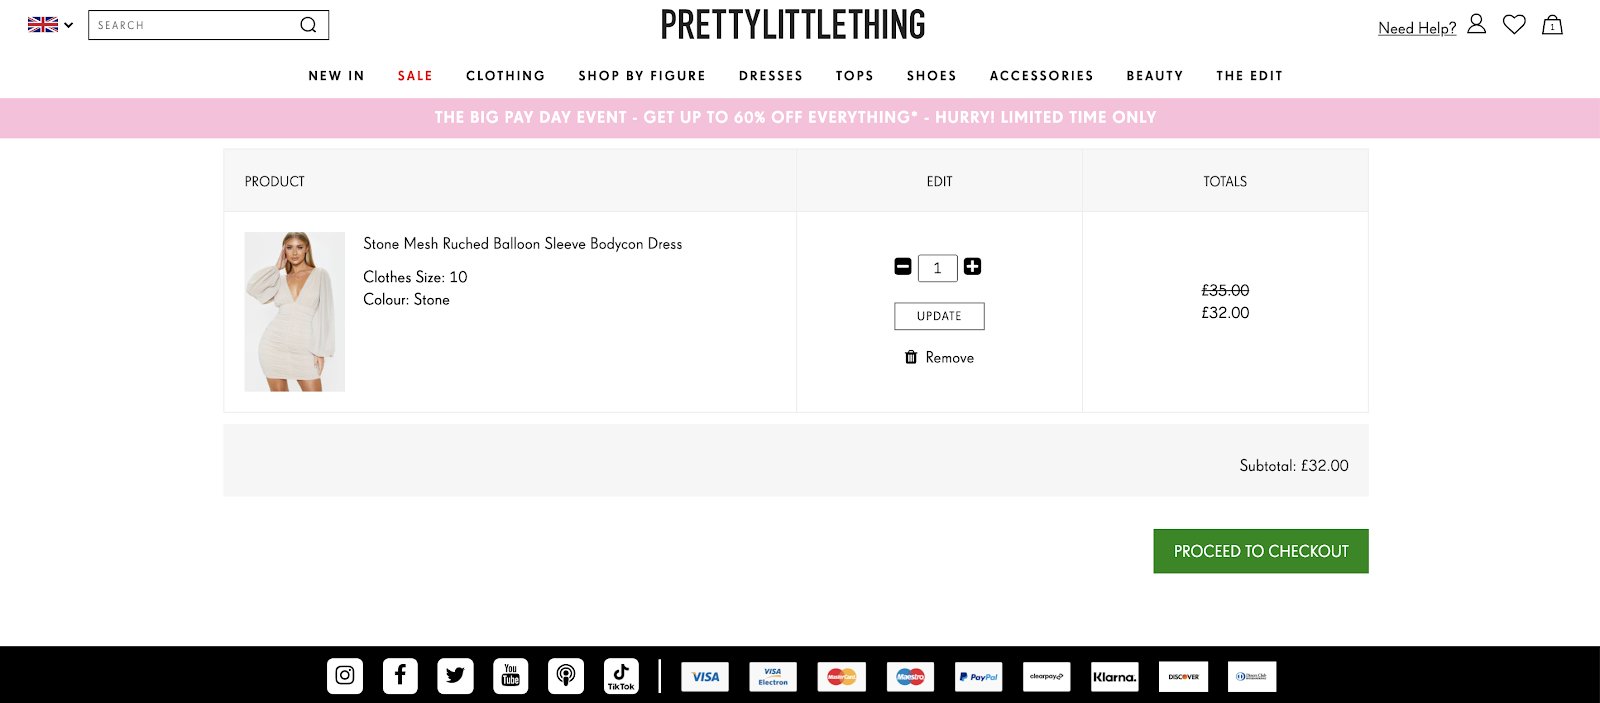 Pretty Little Thing website